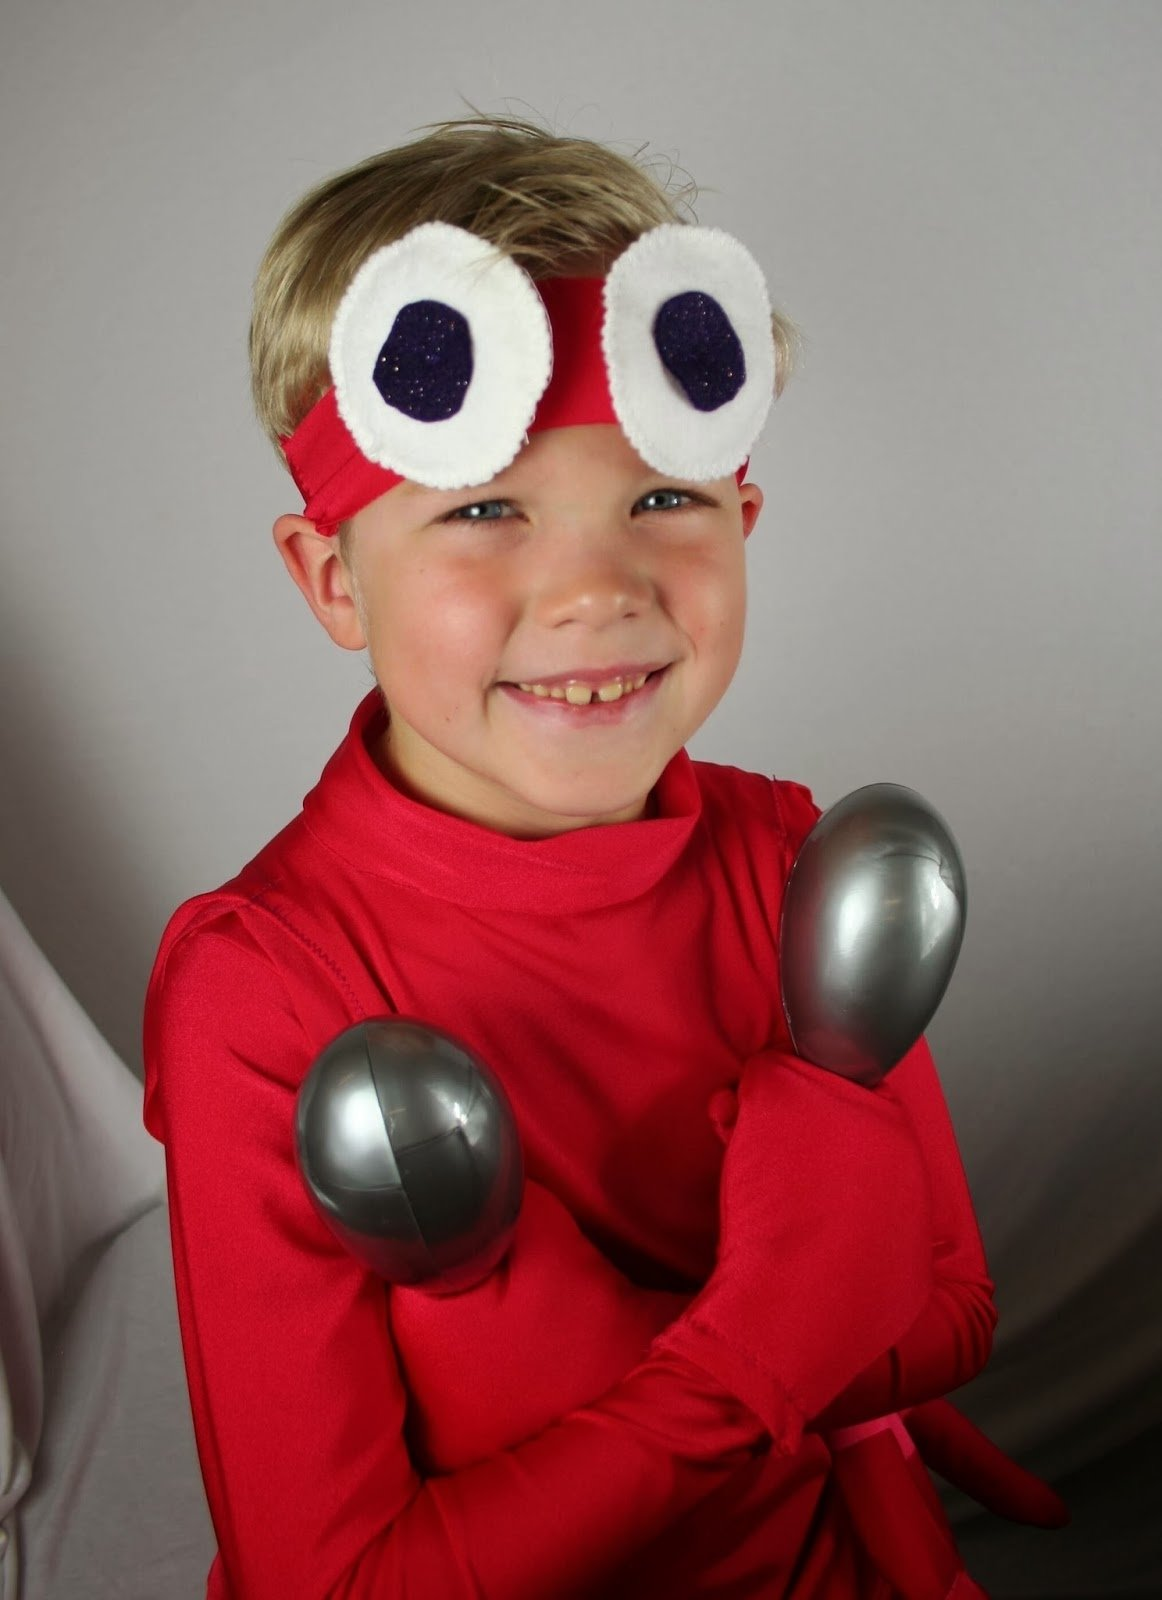 10 Unique Under The Sea Costume Ideas get crafty with creative connections mum i need a halloween